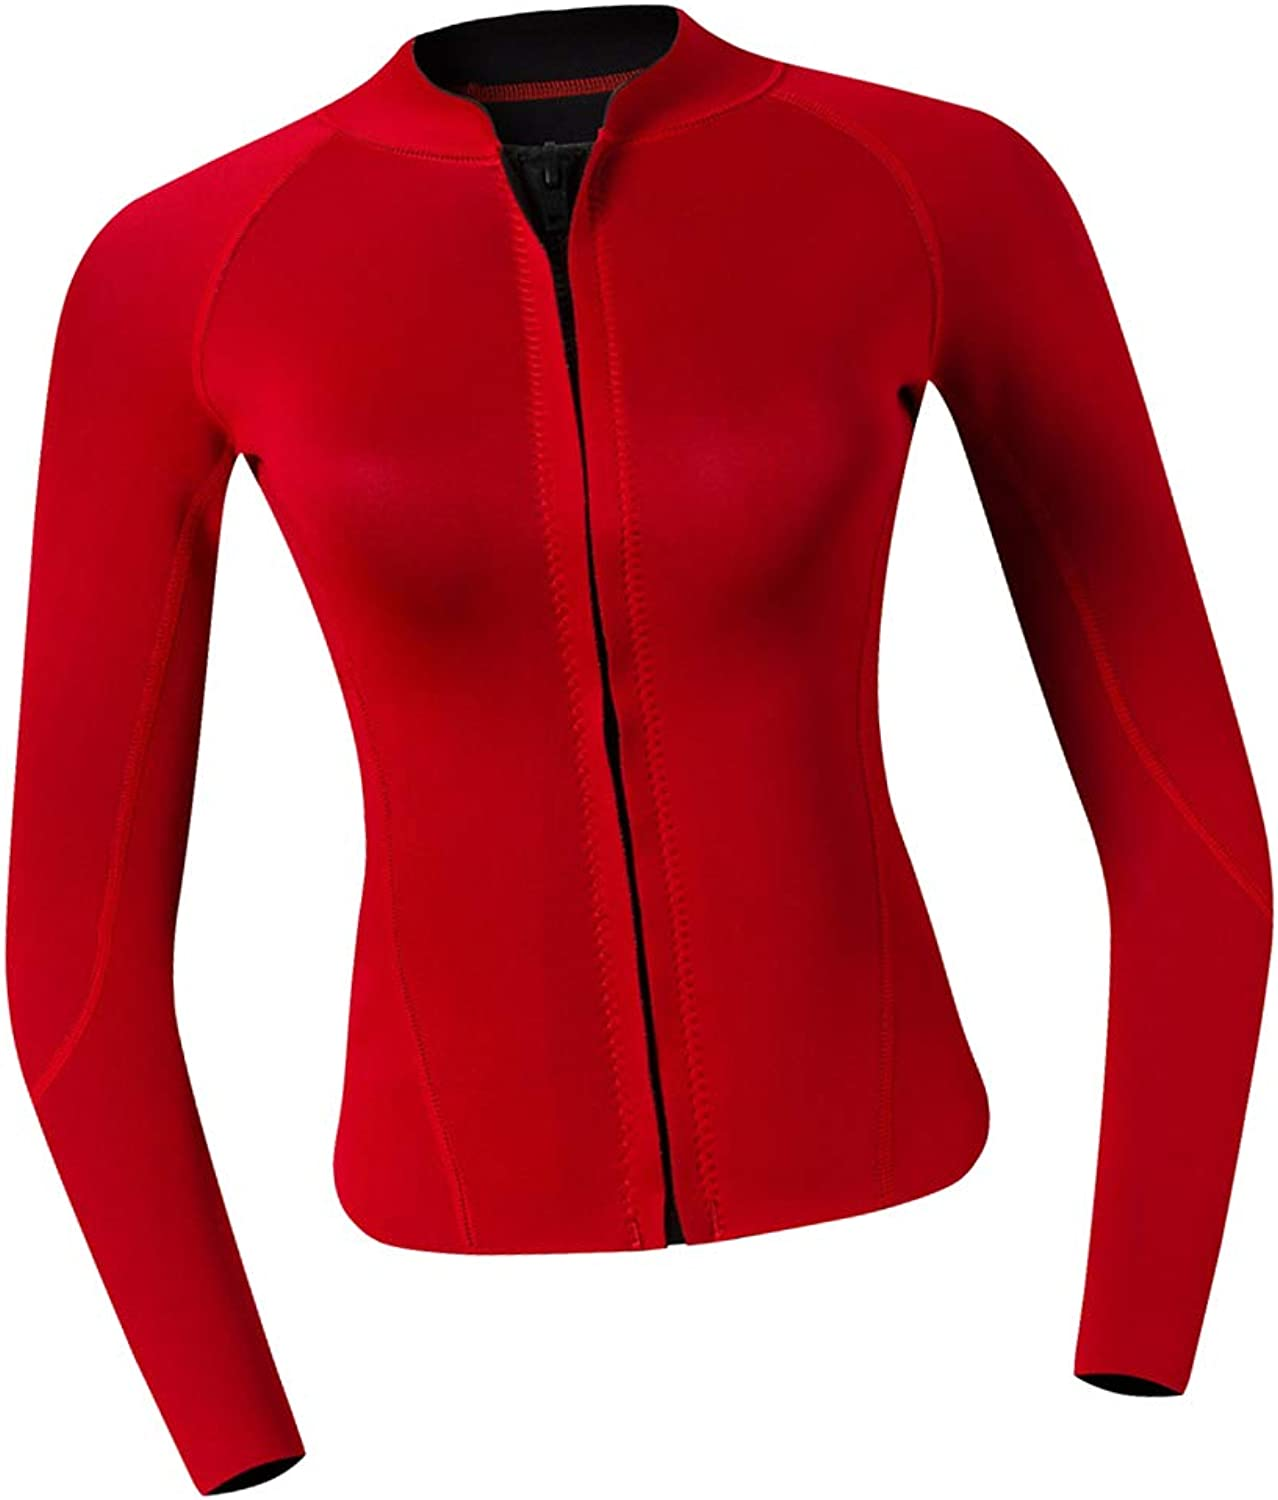 DYNWAVE Women Top Wetsuits Neoprene 2mm Water Sports Jackets Diving Suit for Diving, Snorkeling & Swimming Red